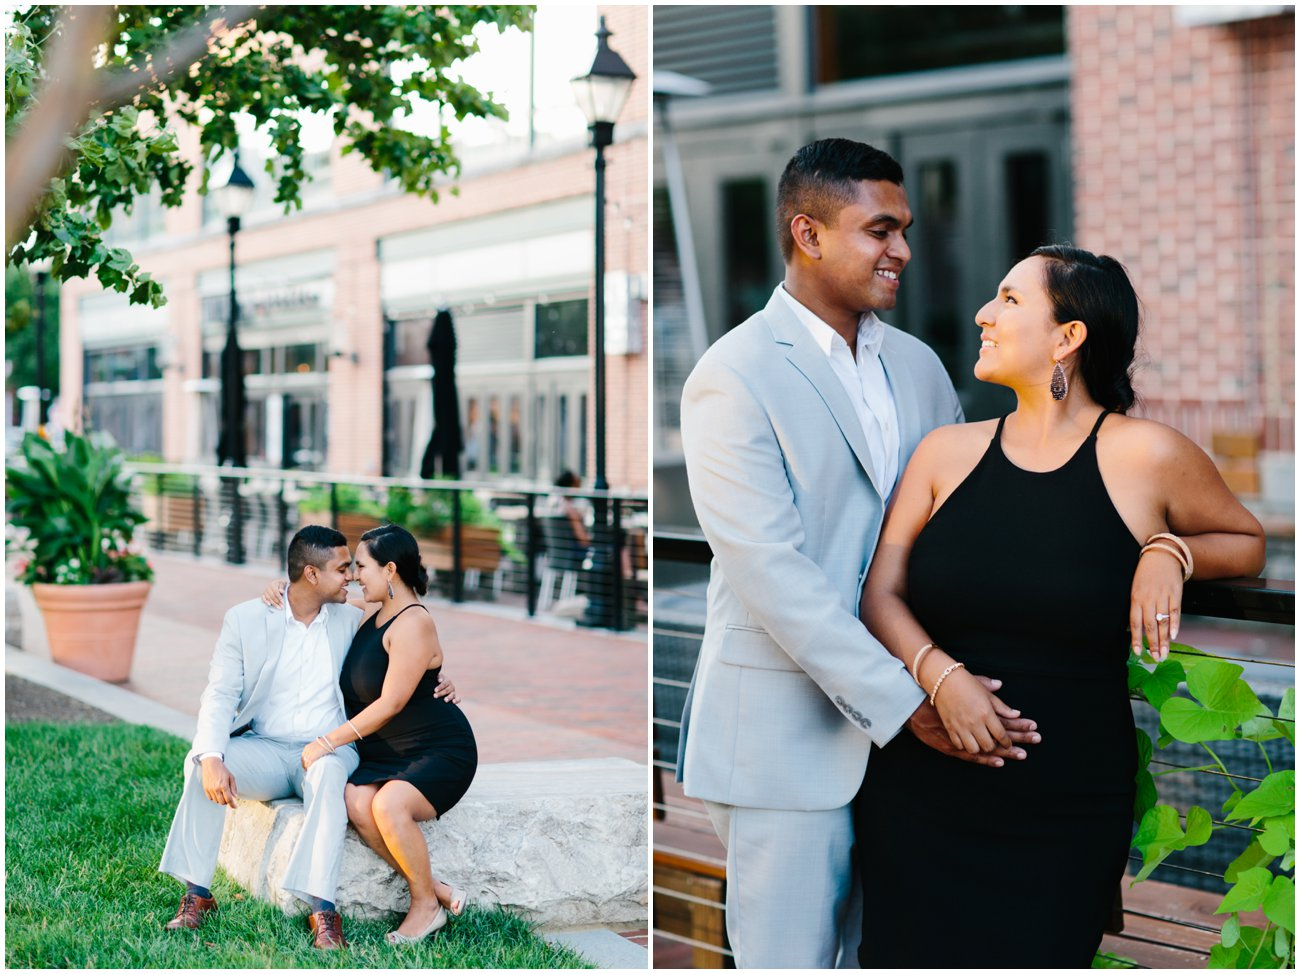 Ruthie_Bobin_Fells_Point_Engagement_Session_Baltimore_Wedding_Photographer_0005